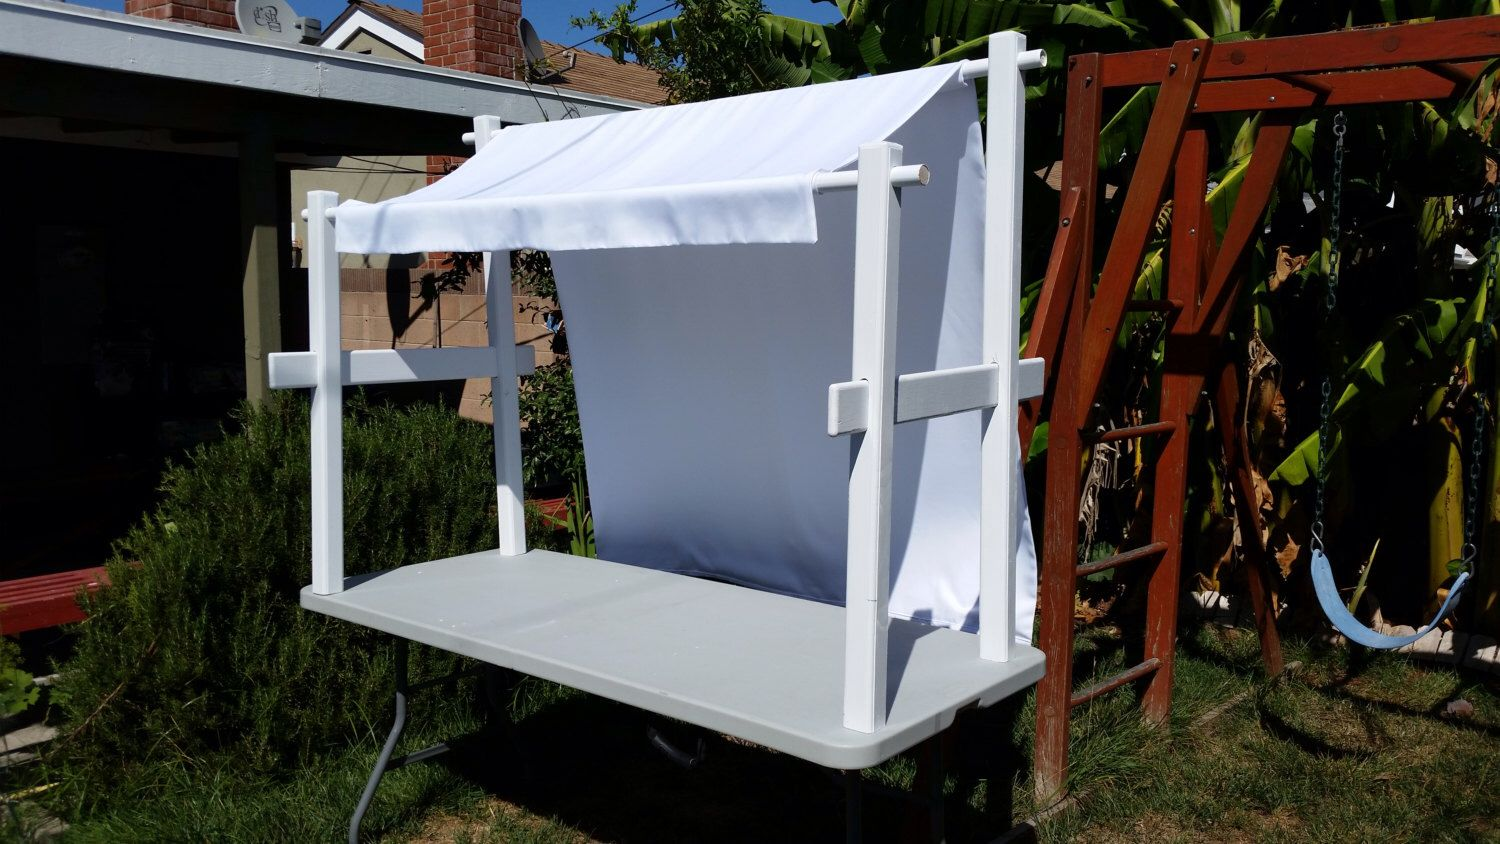 Table Top Canopy With Custom Awning Etsy In 2020 Custom Awnings Diy Canopy Canopy